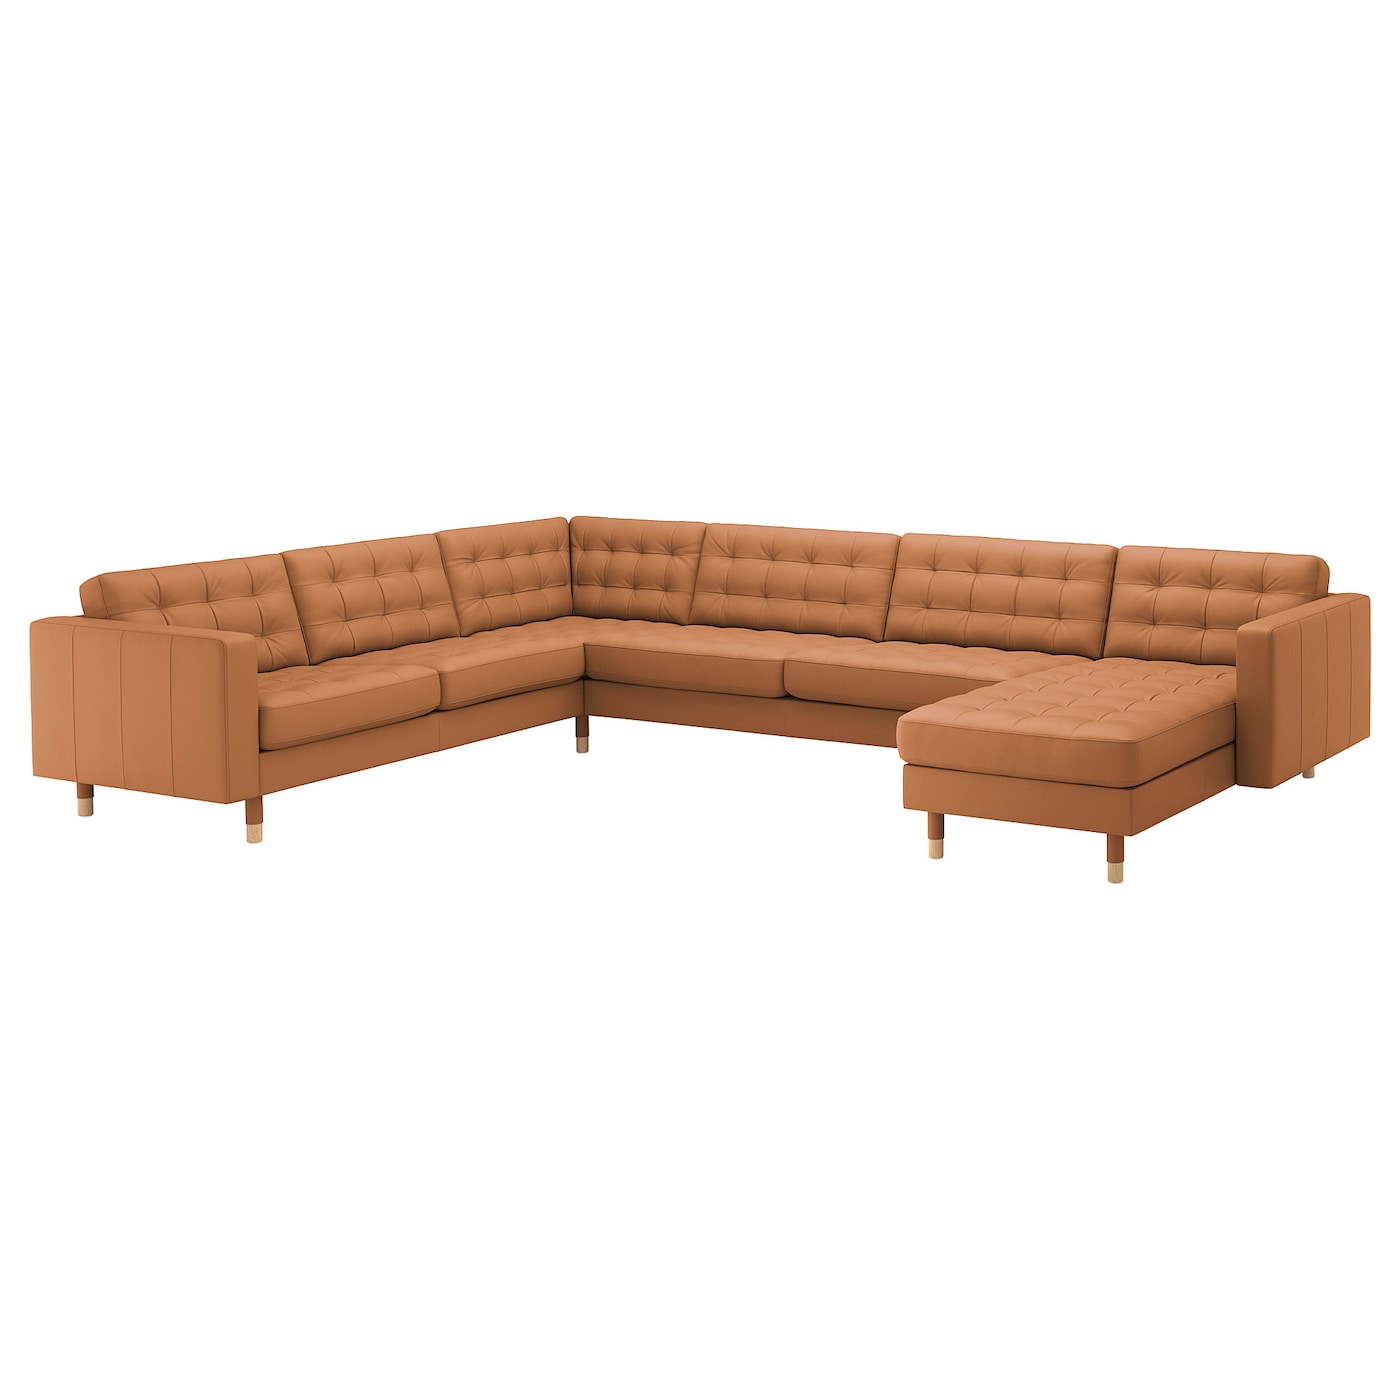 MORABO Sectional, 12 seat   with chaise/Grann/Bomstad golden brown/wood